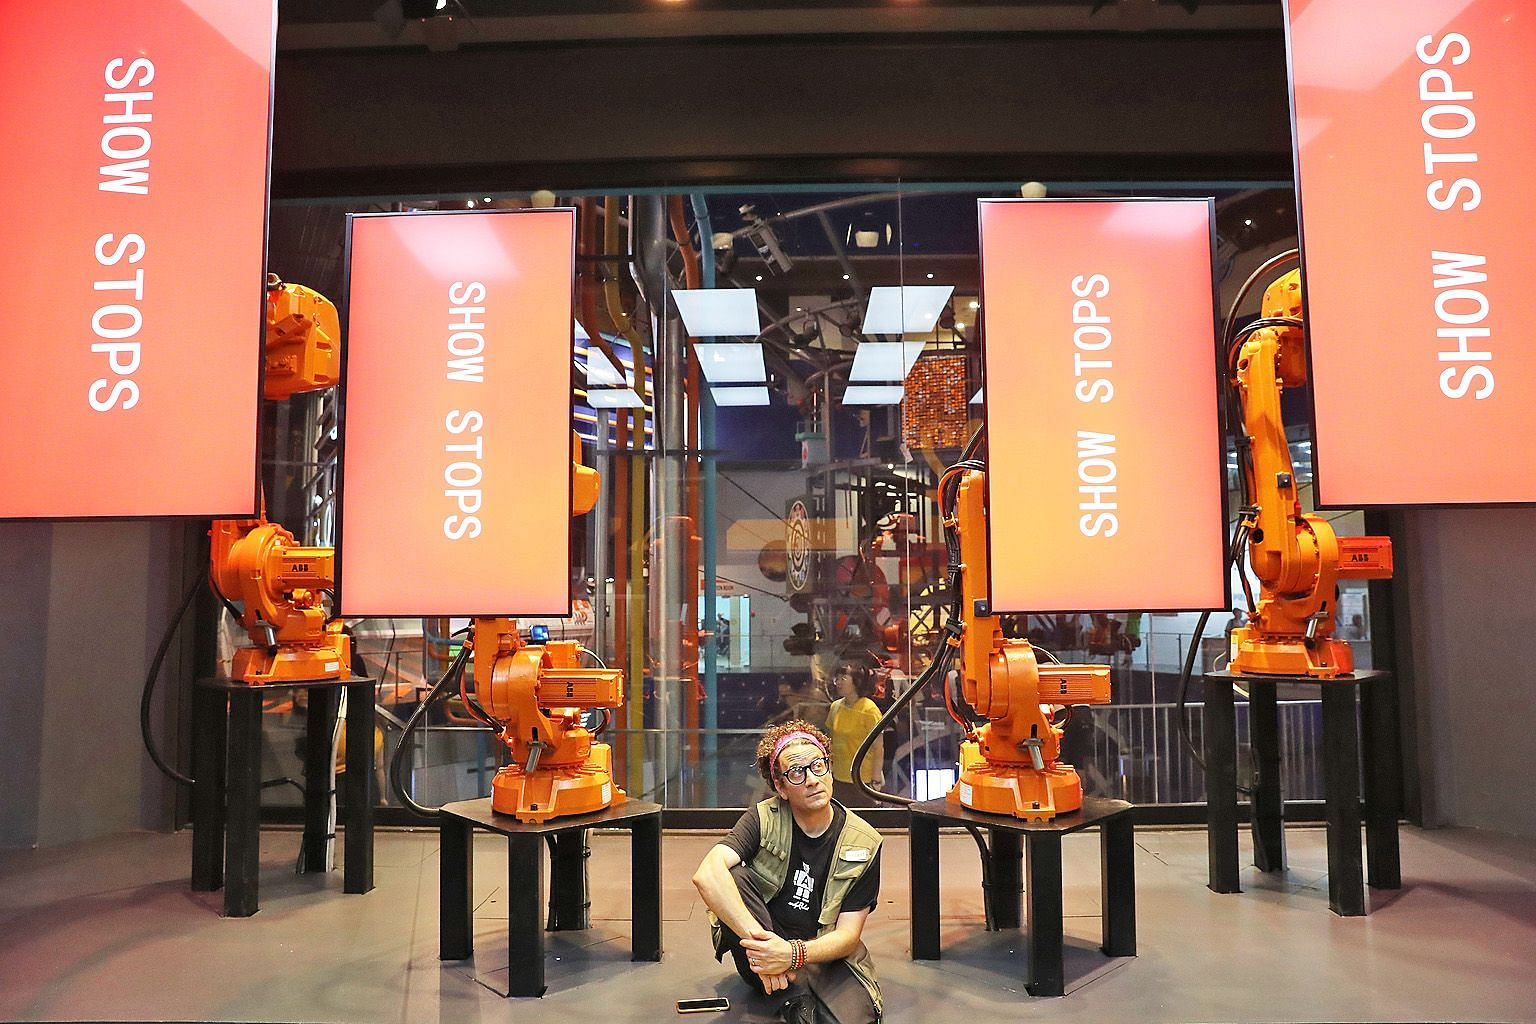 Mr Andy Flessas with his RoboScreens at the Science Centre Singapore. With the help of flexible and fluid robotic arms that can glide, bow and spin, the moving screens put on a show that explains the evolution of engineering. The robot show is part o